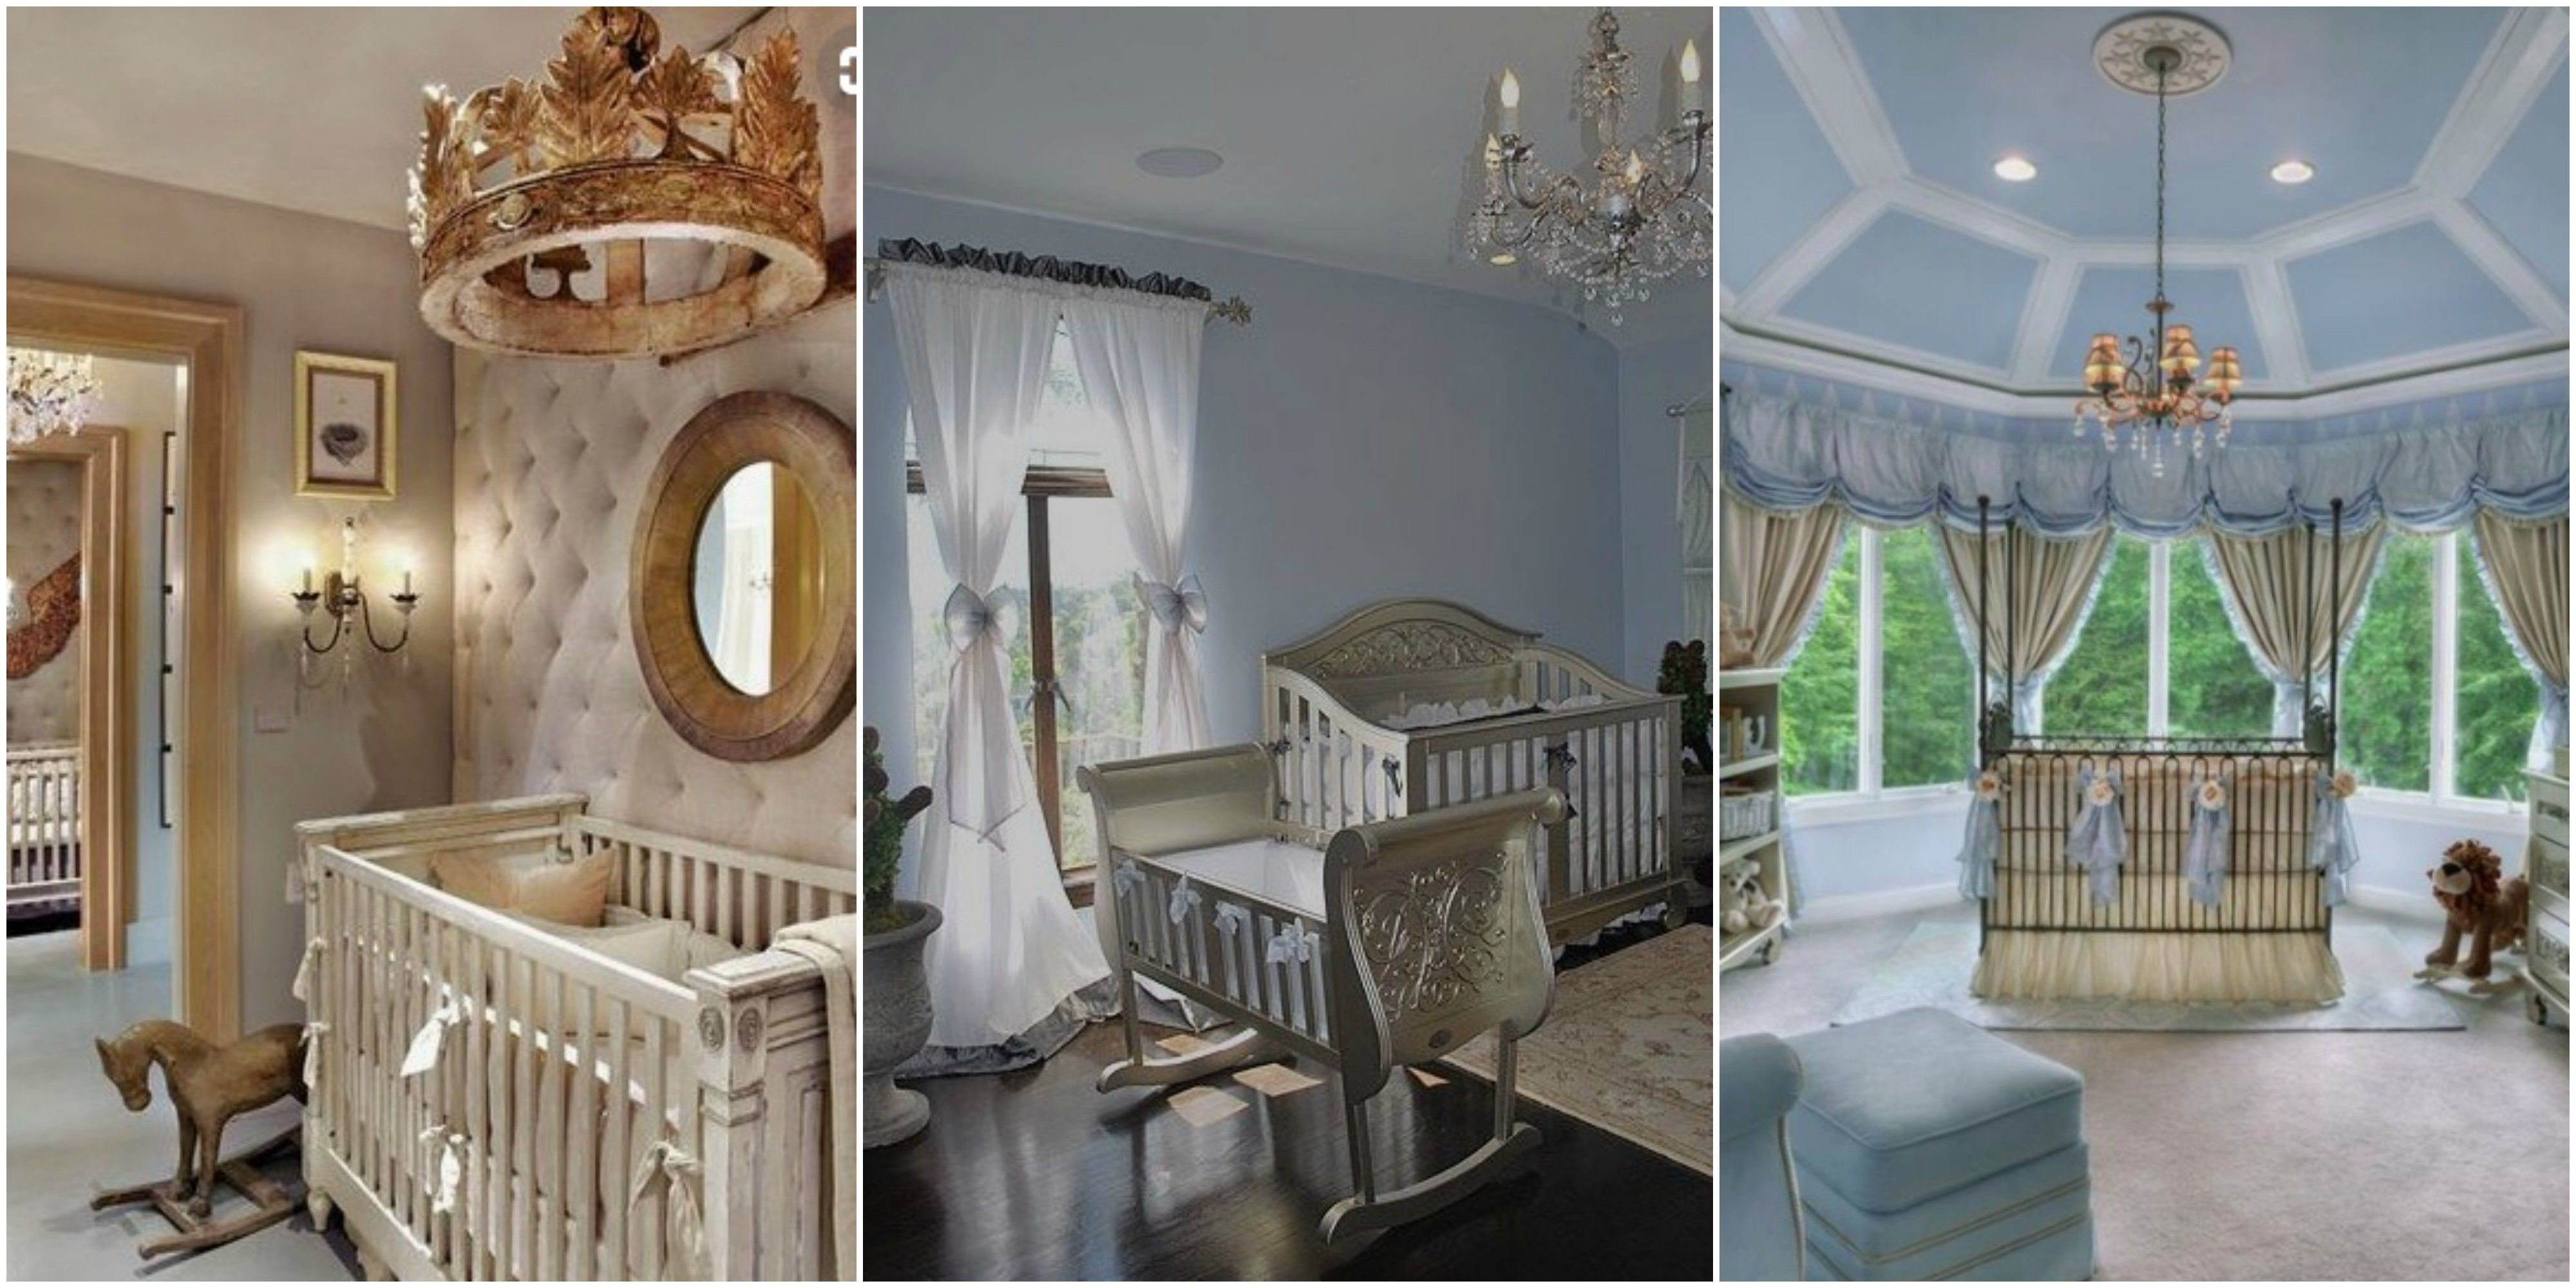 Royal baby nursery room ideas & Royal Baby Boy - 10 Nursery Room Ideas On Pinterest Fit For a Future ...